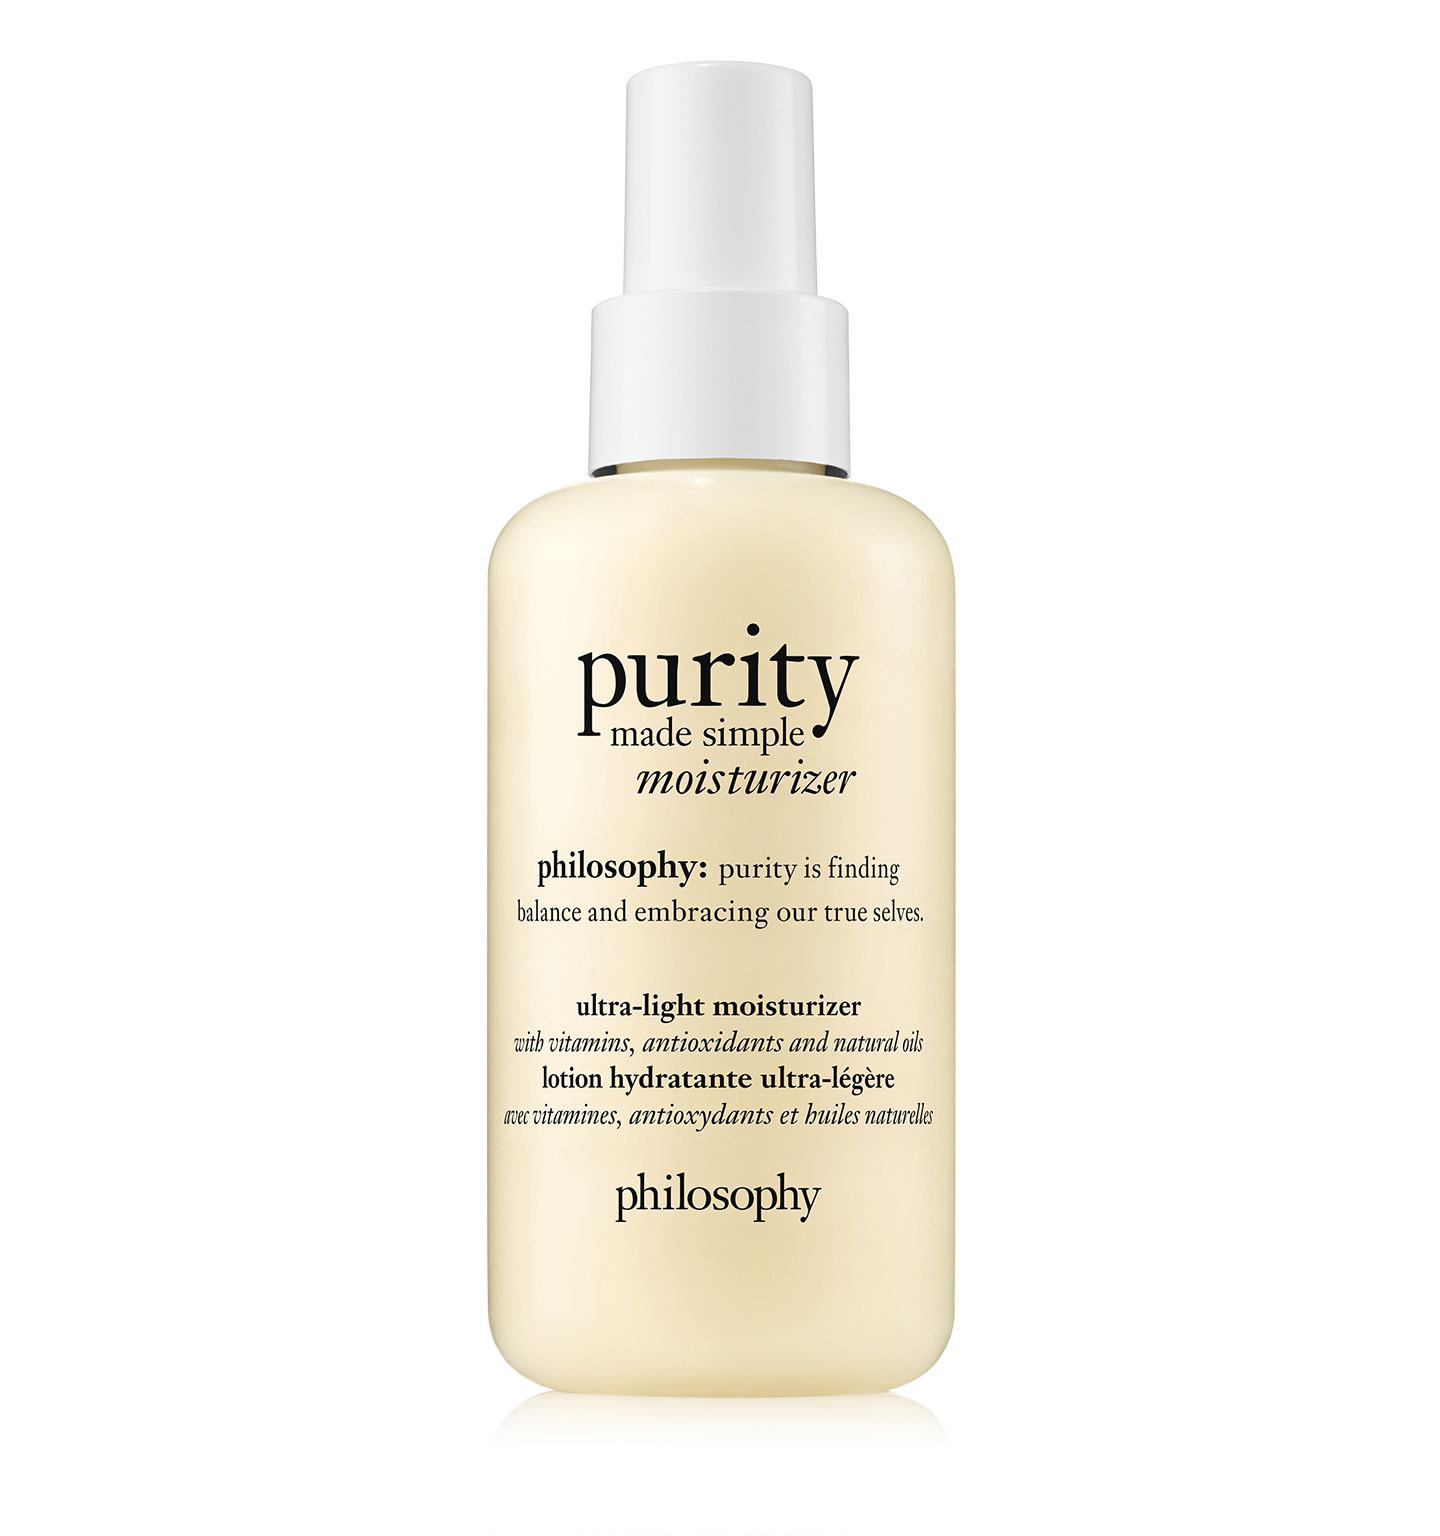 philosophy, purity made simple moisturizer